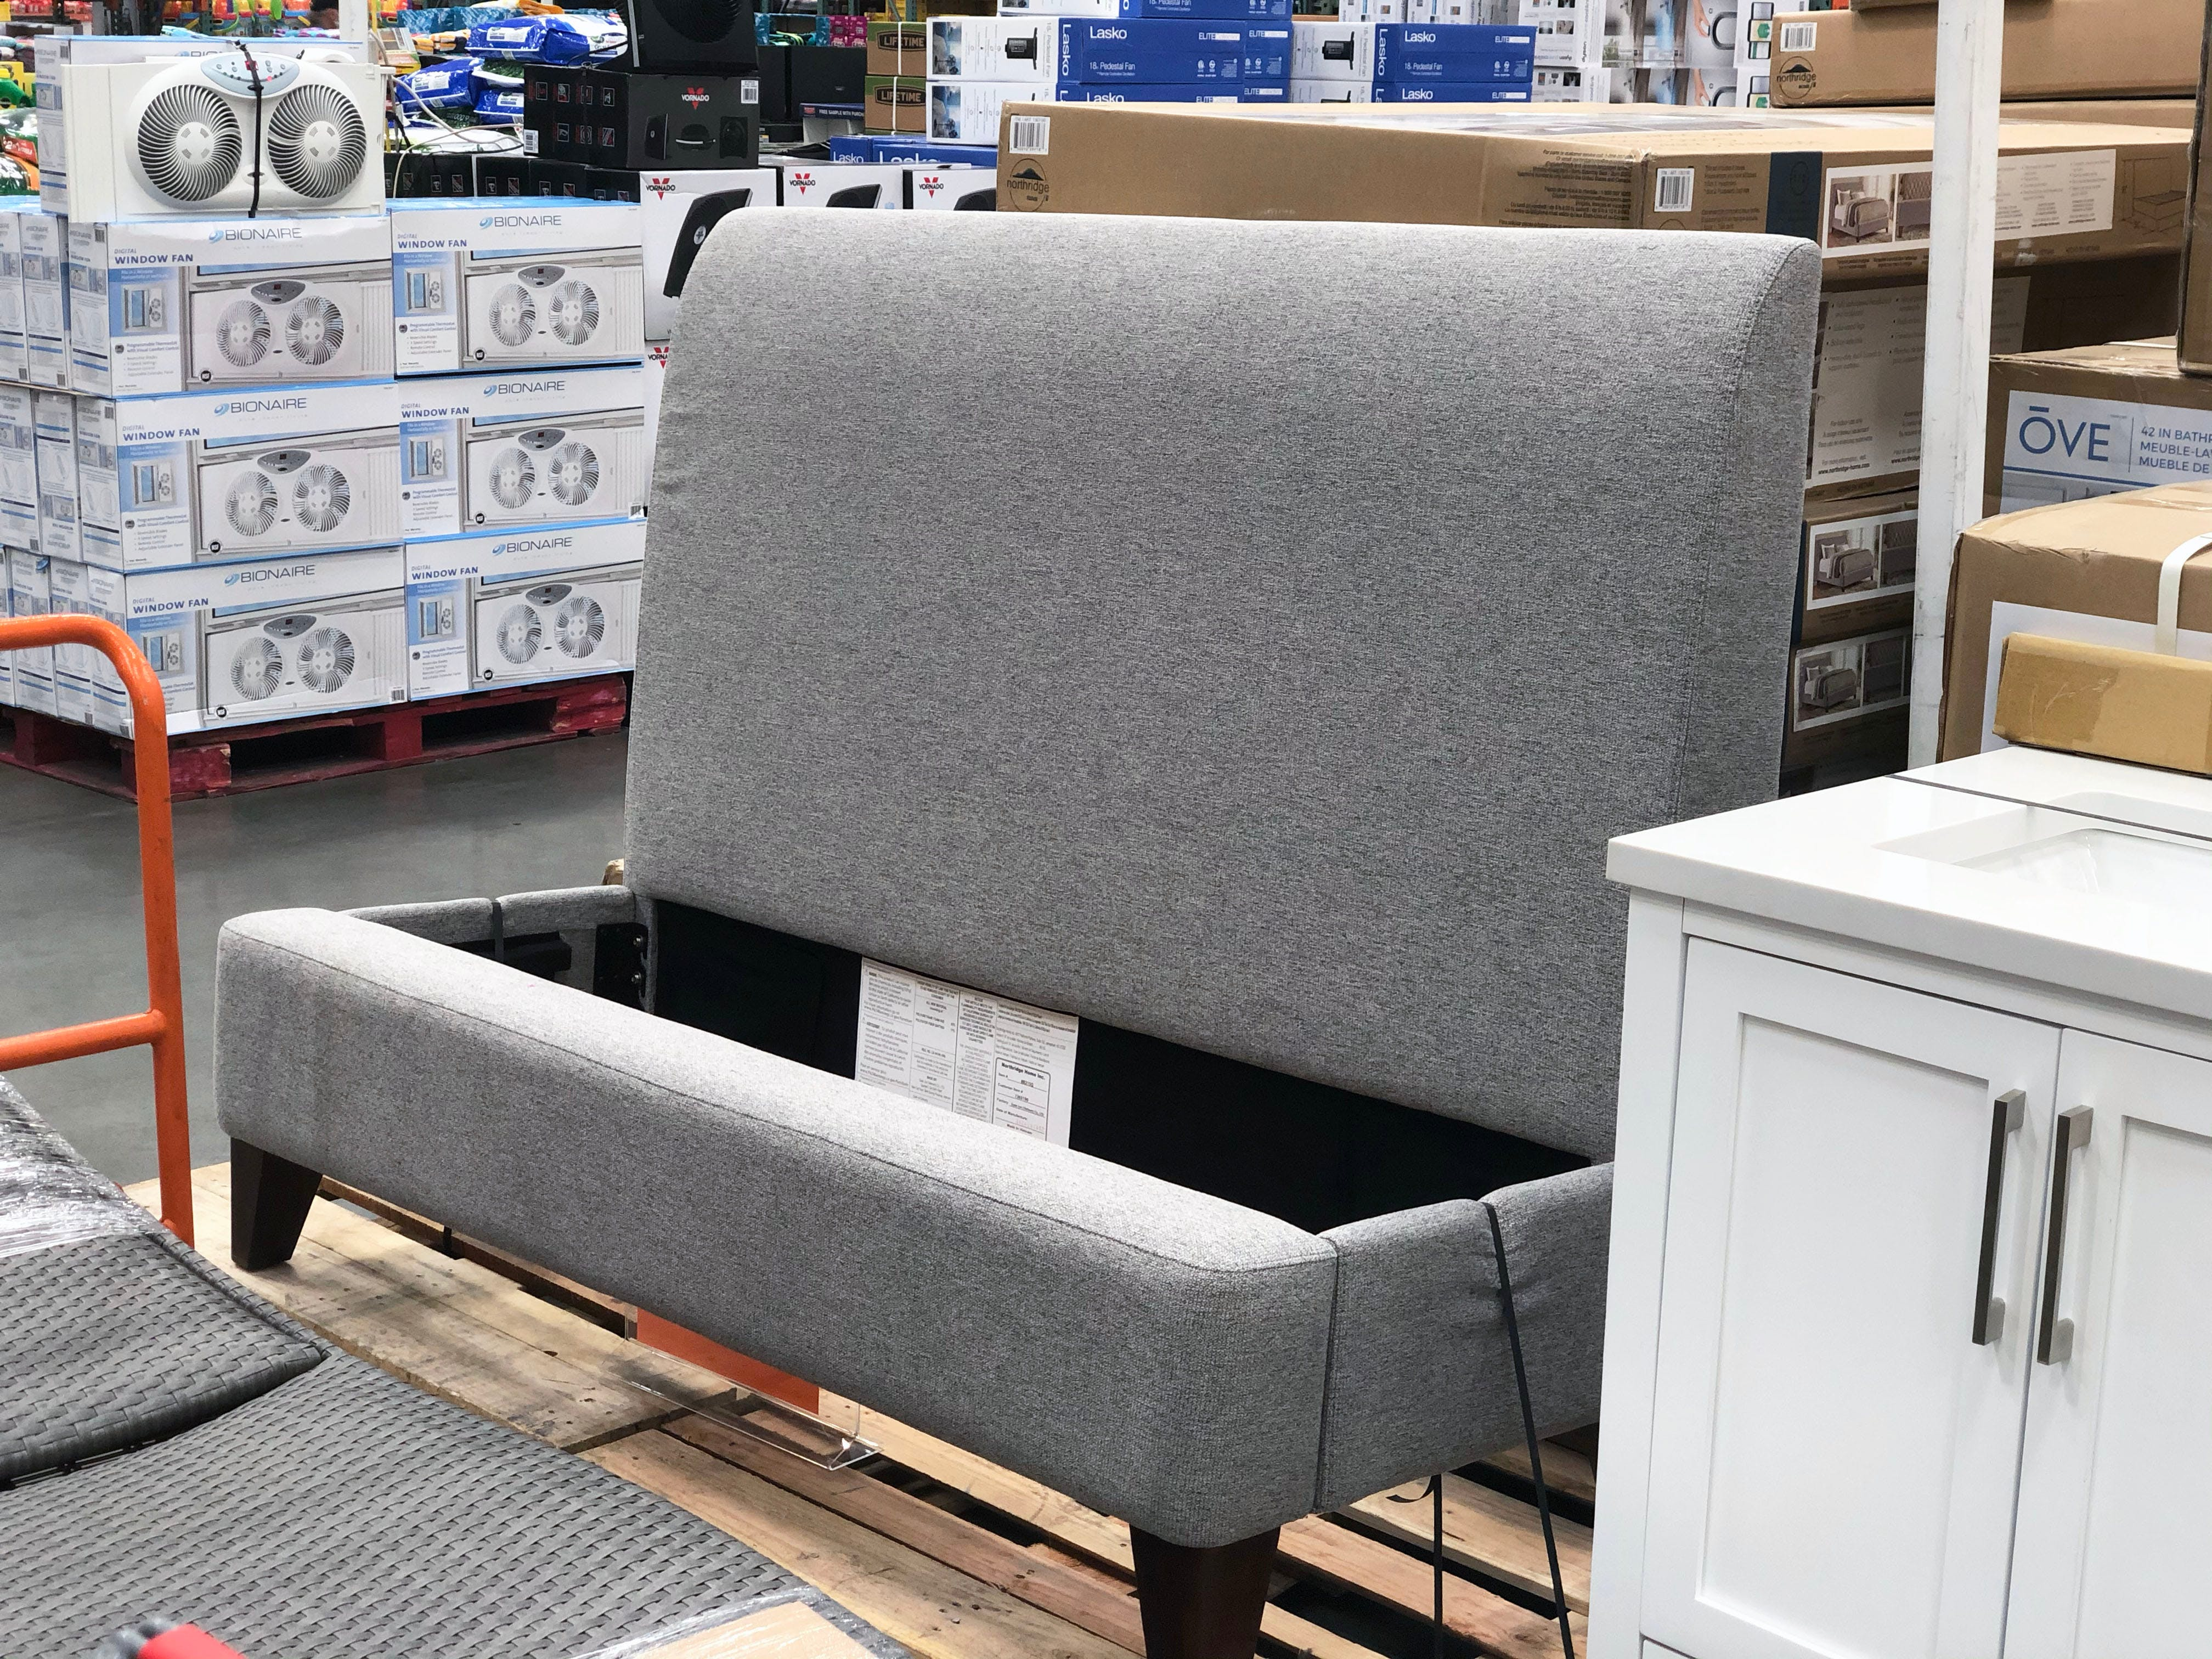 Upholstered Queen Bed Only 299 99 At Costco The Krazy Coupon Lady